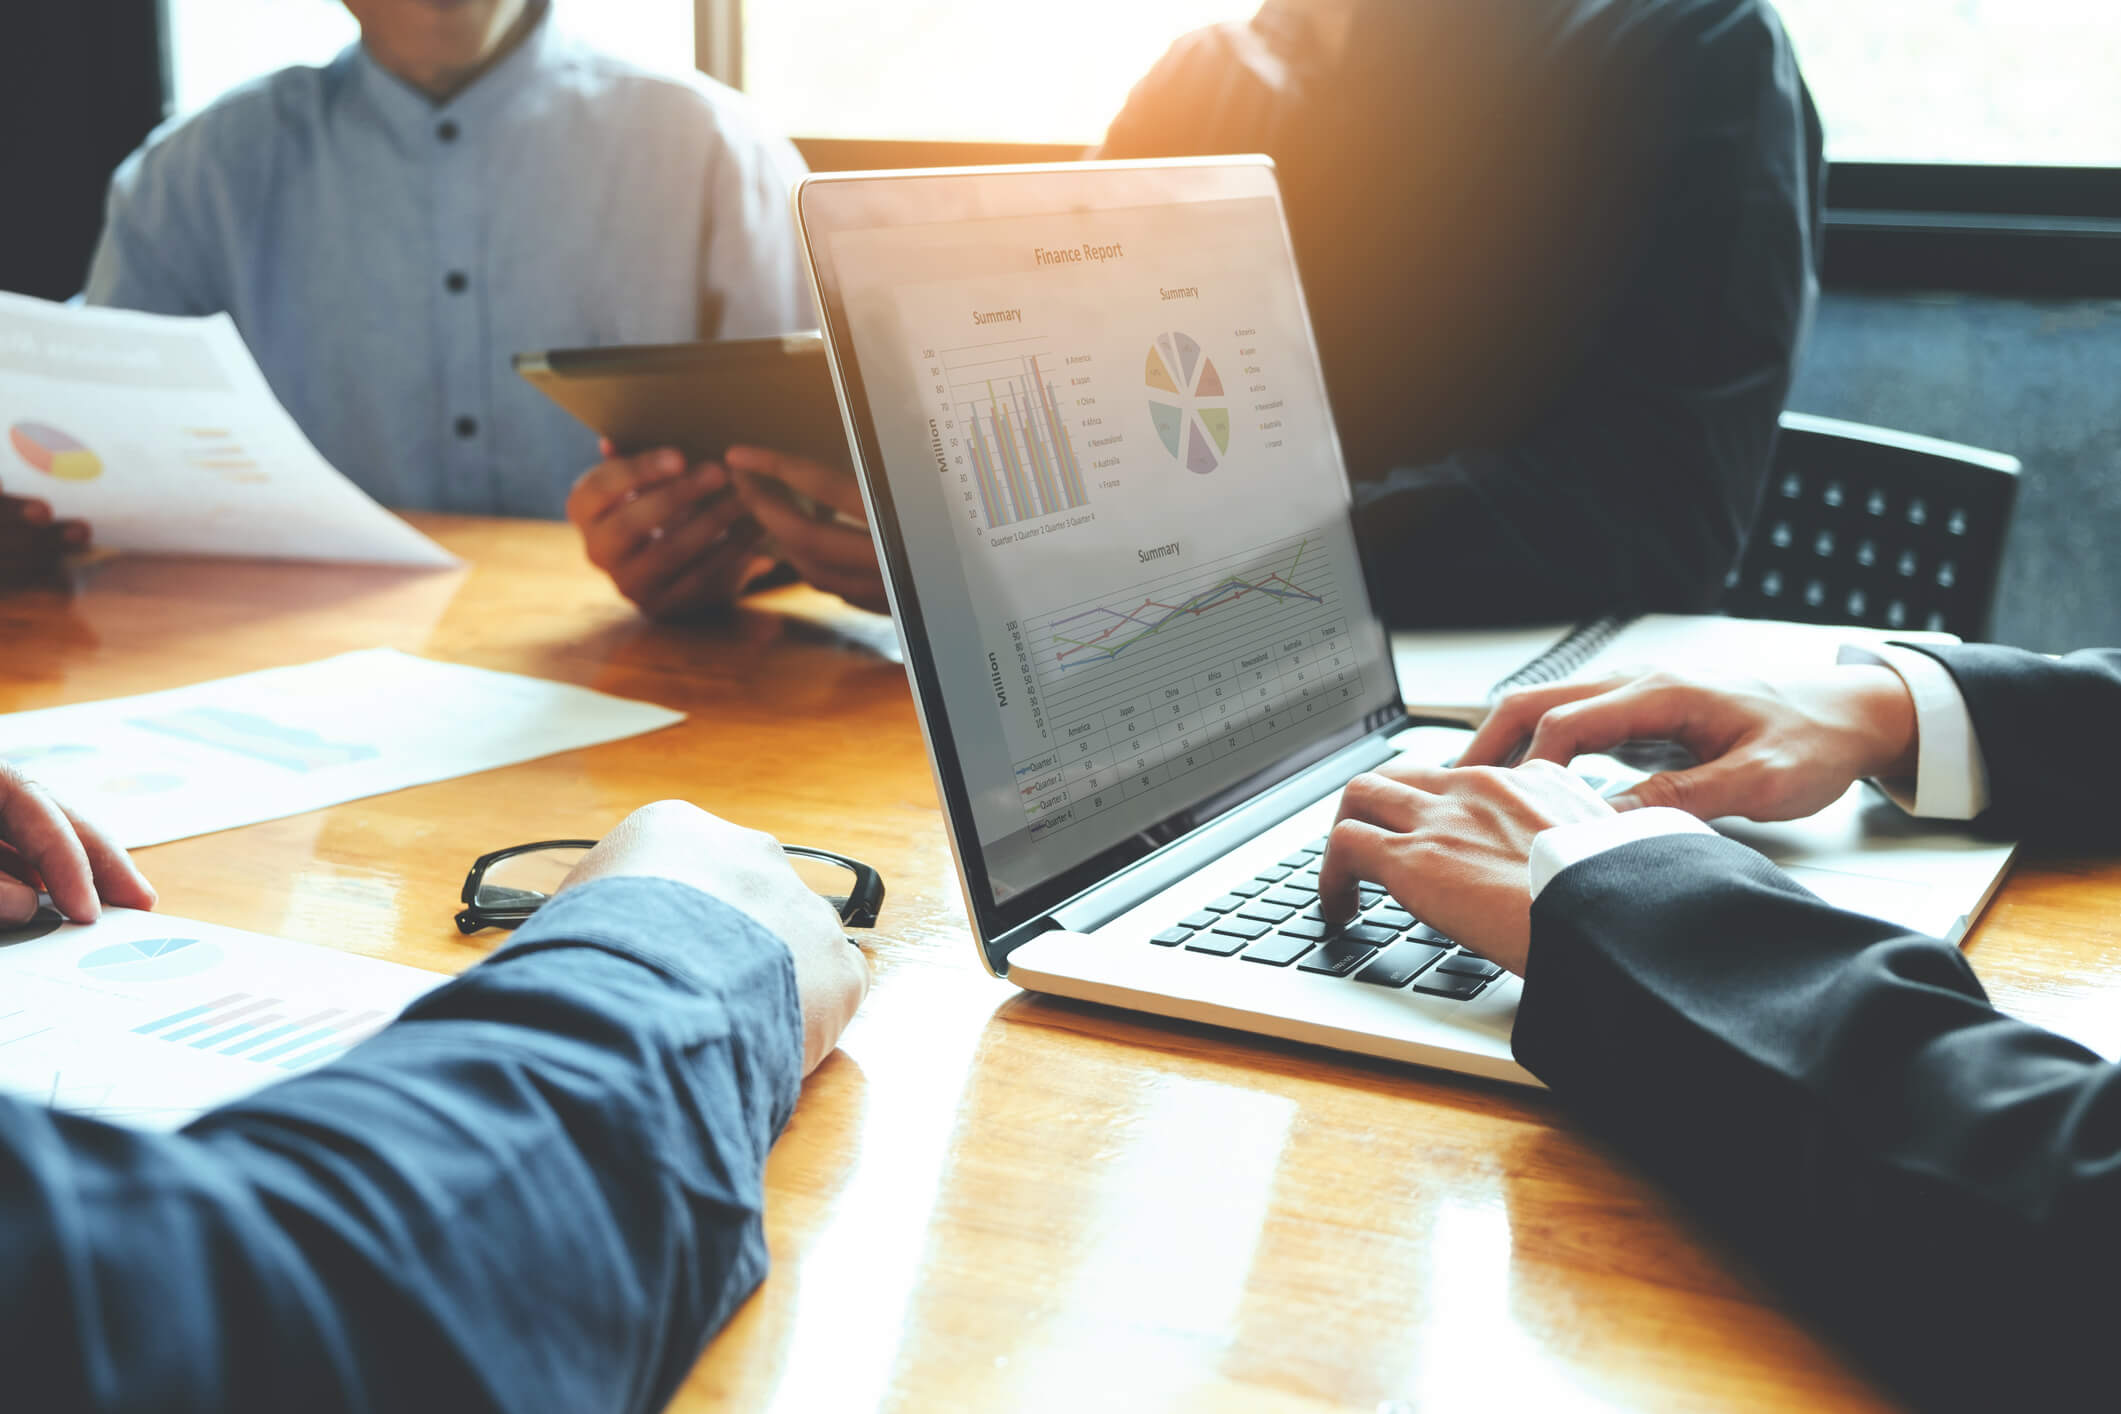 How to Get the Most Out of Your Existing IT Budget